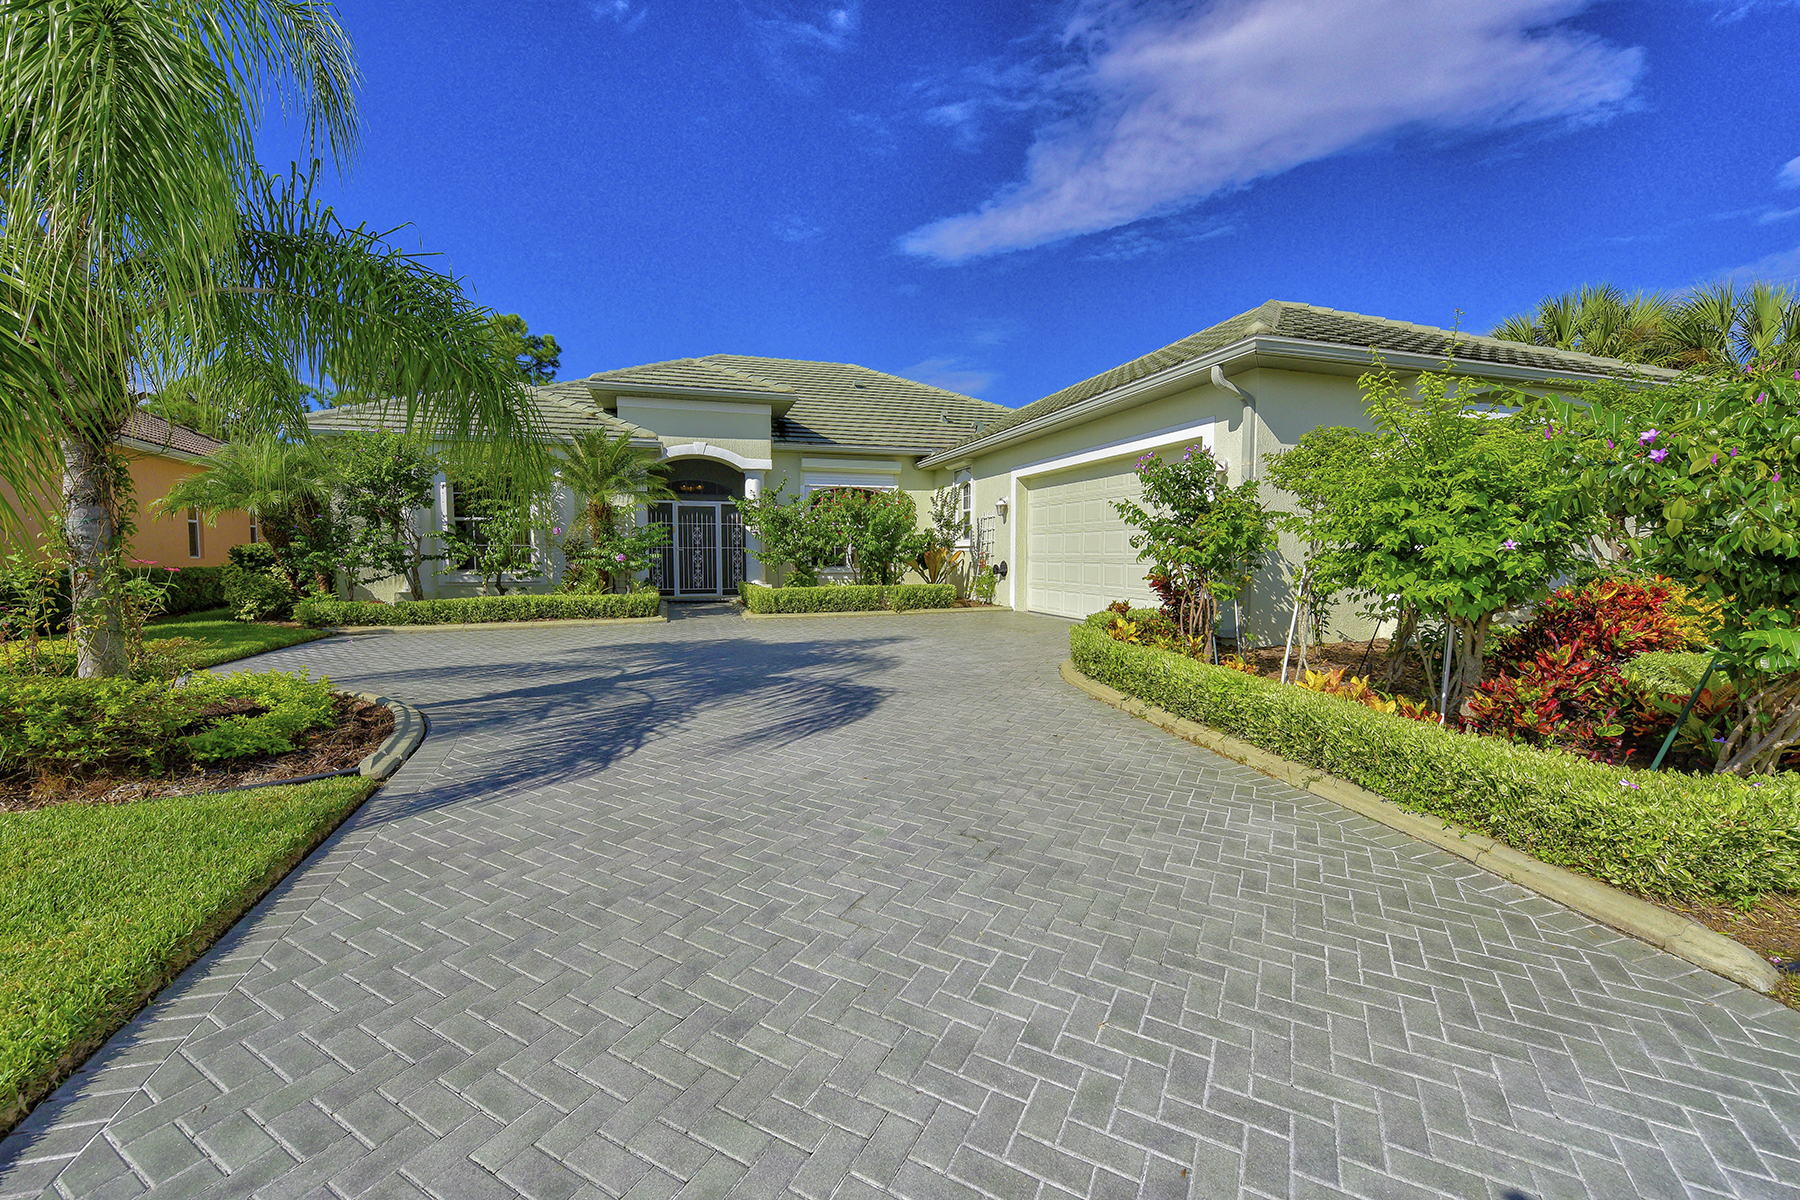 Single Family Home for Sale at PELICAN POINTE 1188 Tuscany Blvd Venice, Florida 34292 United States